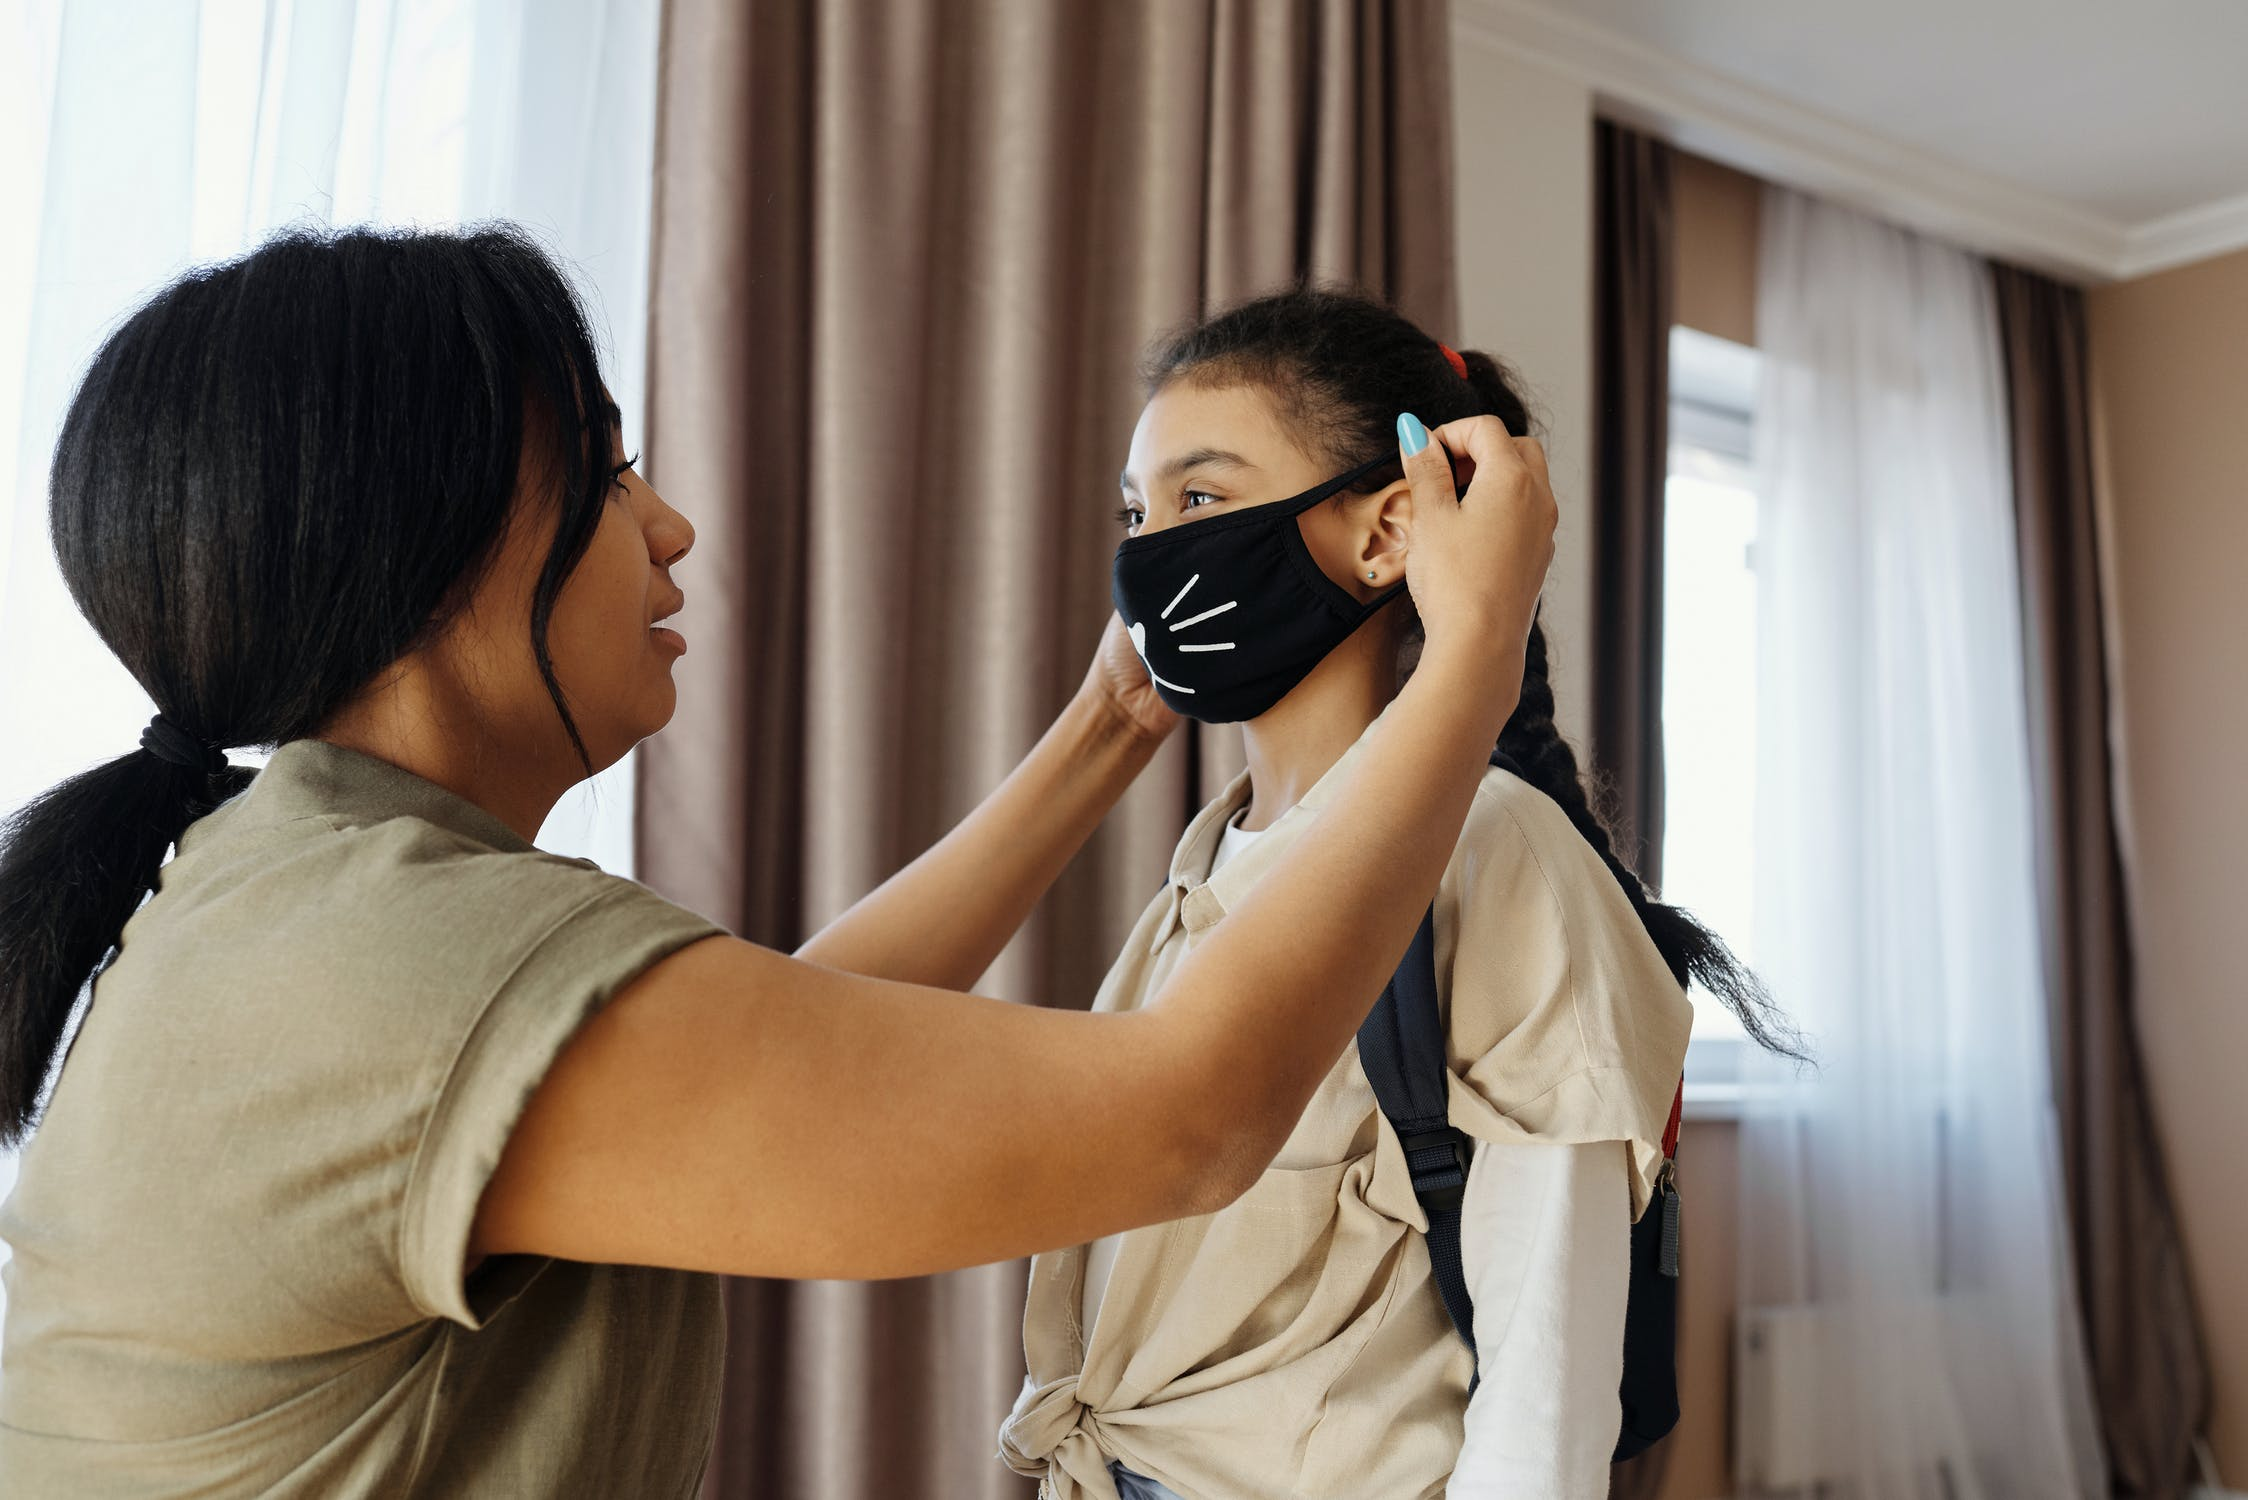 A woman helps a young child put on a face mask. Photo by August de Richelieu. Used with permission from Pexels.com